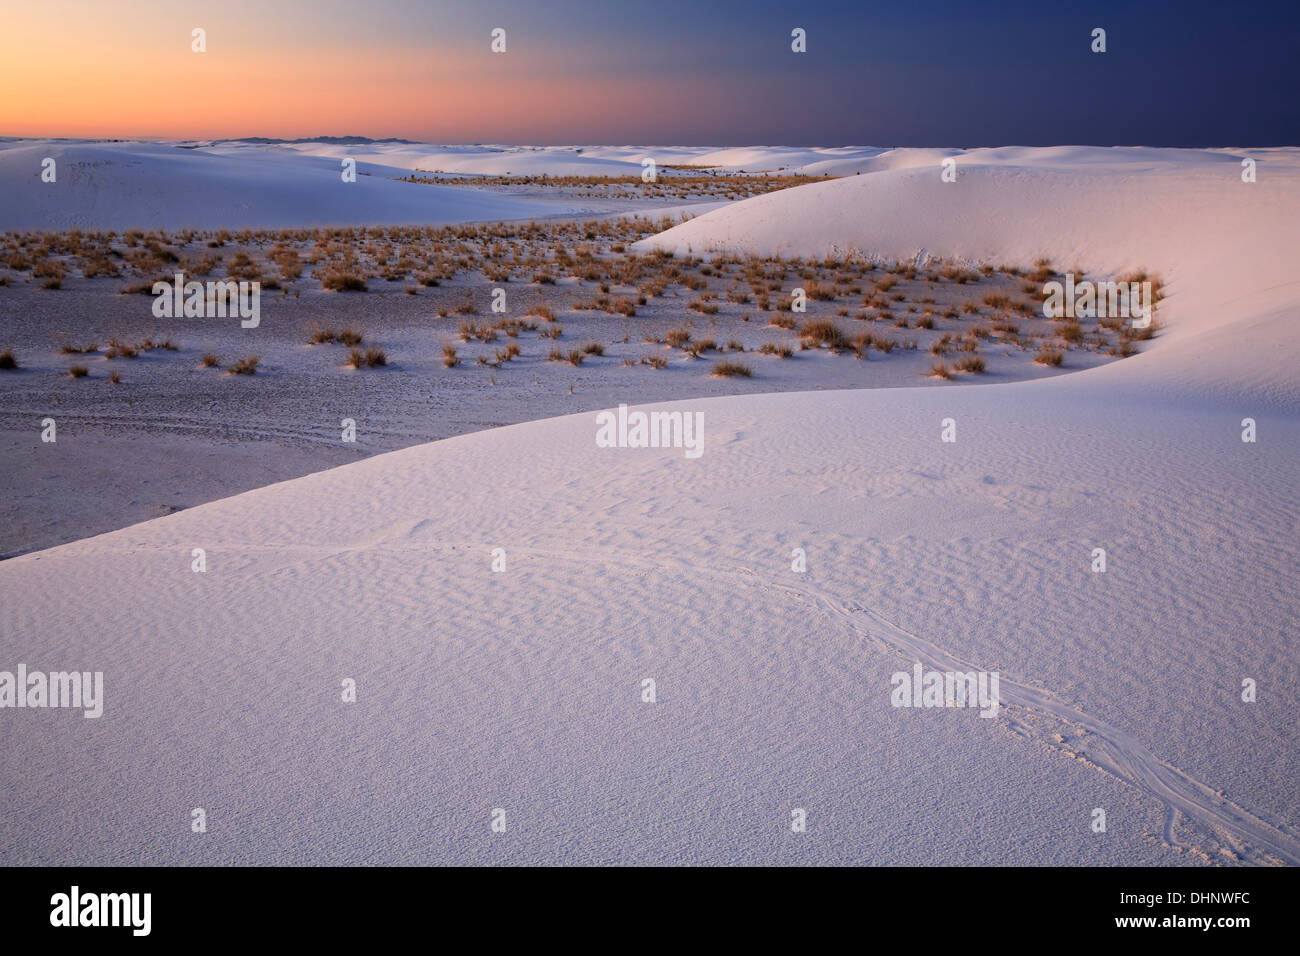 Dunes and shrubs at sunrise, White Sands National Monument, Alamogordo, New Mexico USA - Stock Image